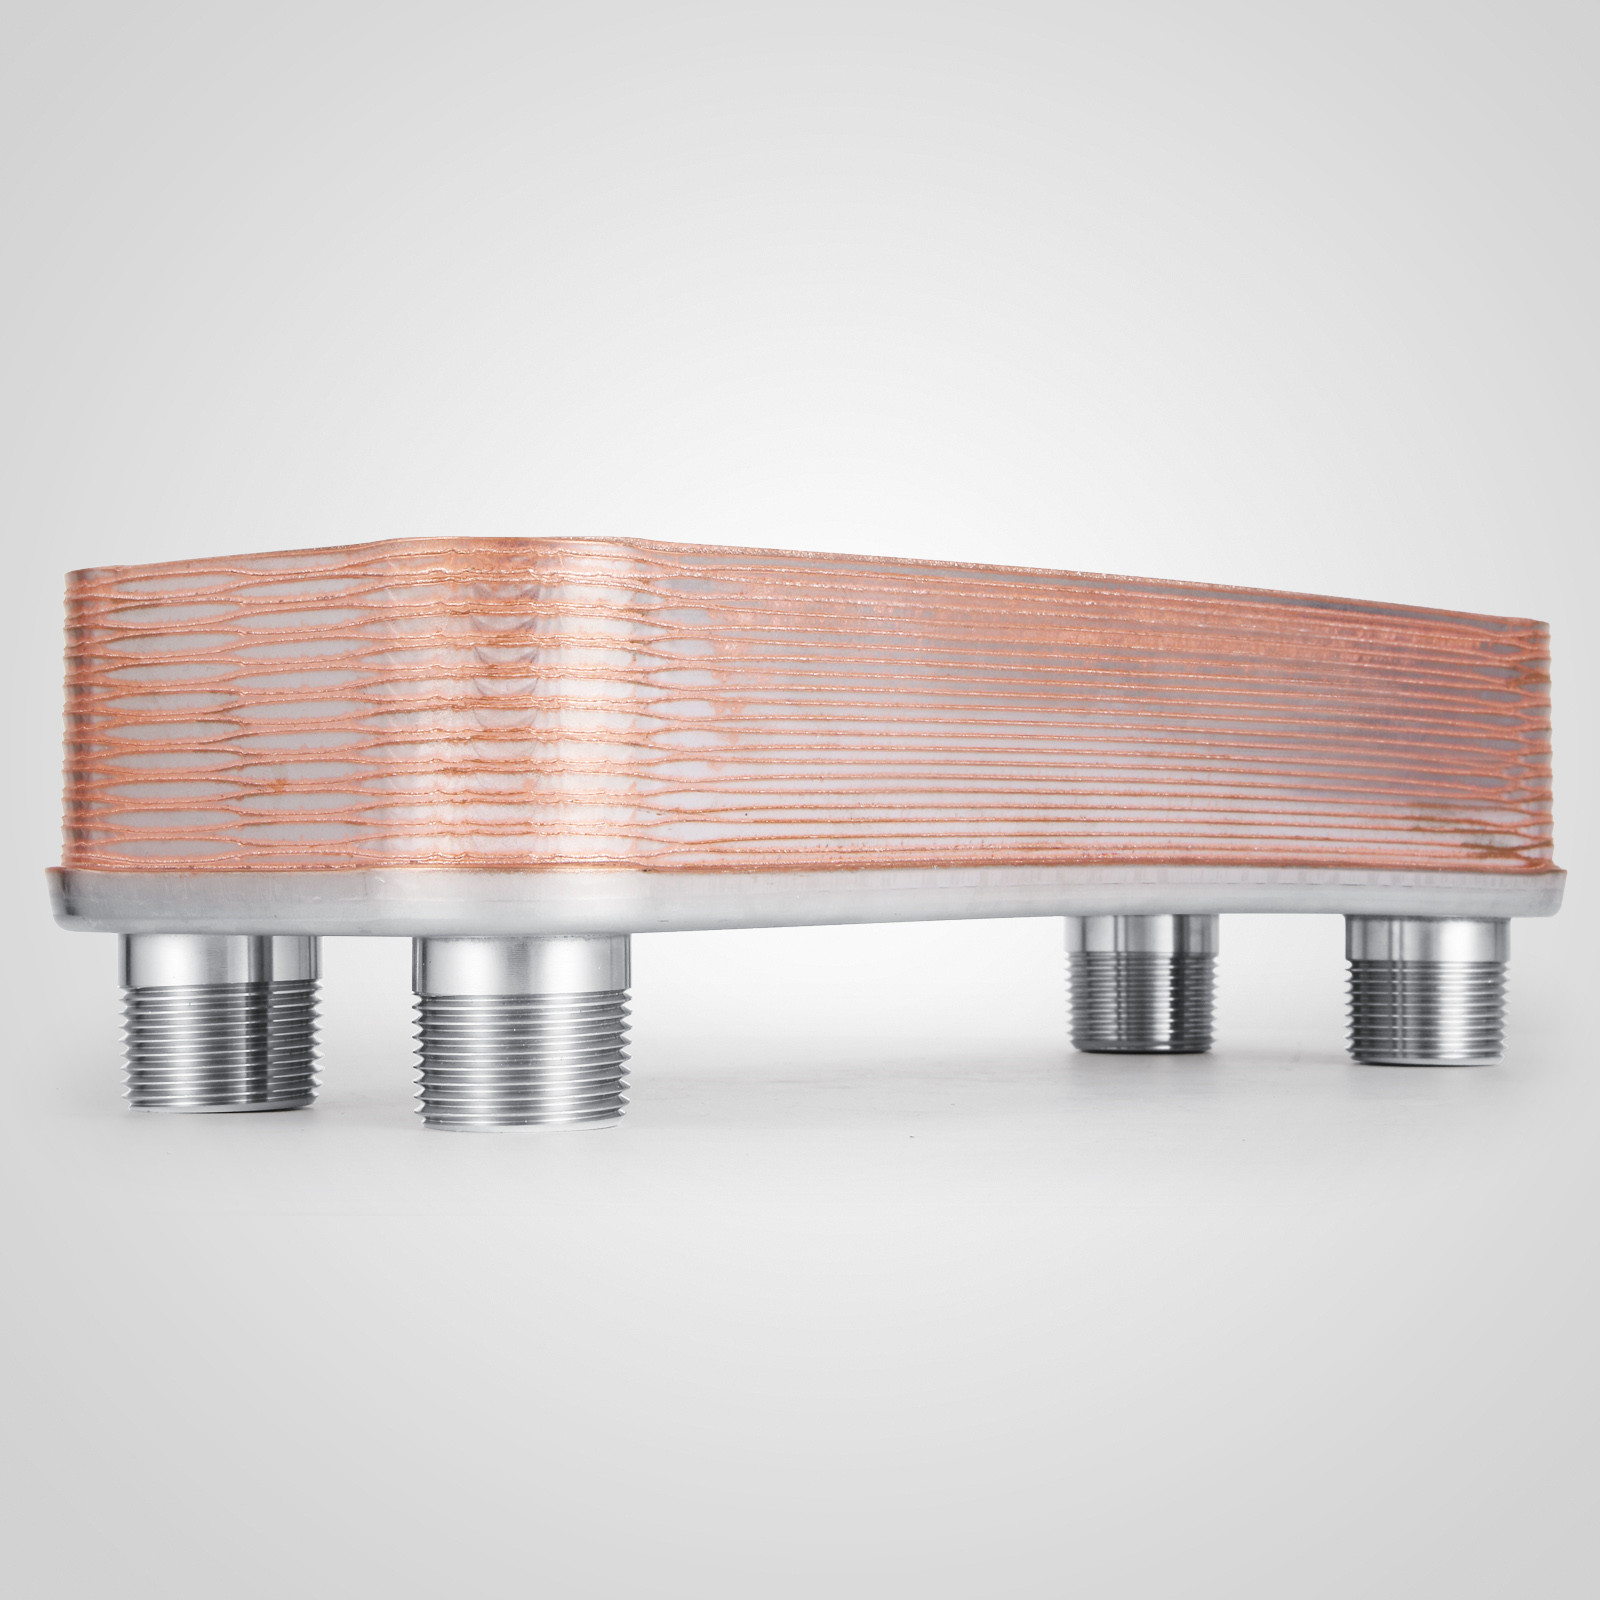 Radiant 316L Stainless Steel Brazed Plate Heat Exchanger-PURE copper Boilers